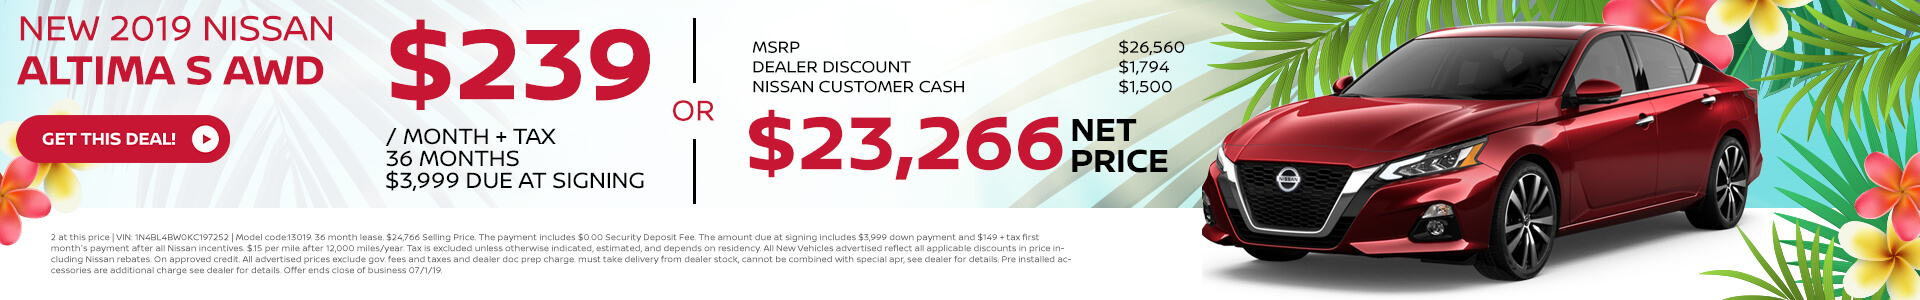 2019 Nissan Altima - Lease for $239